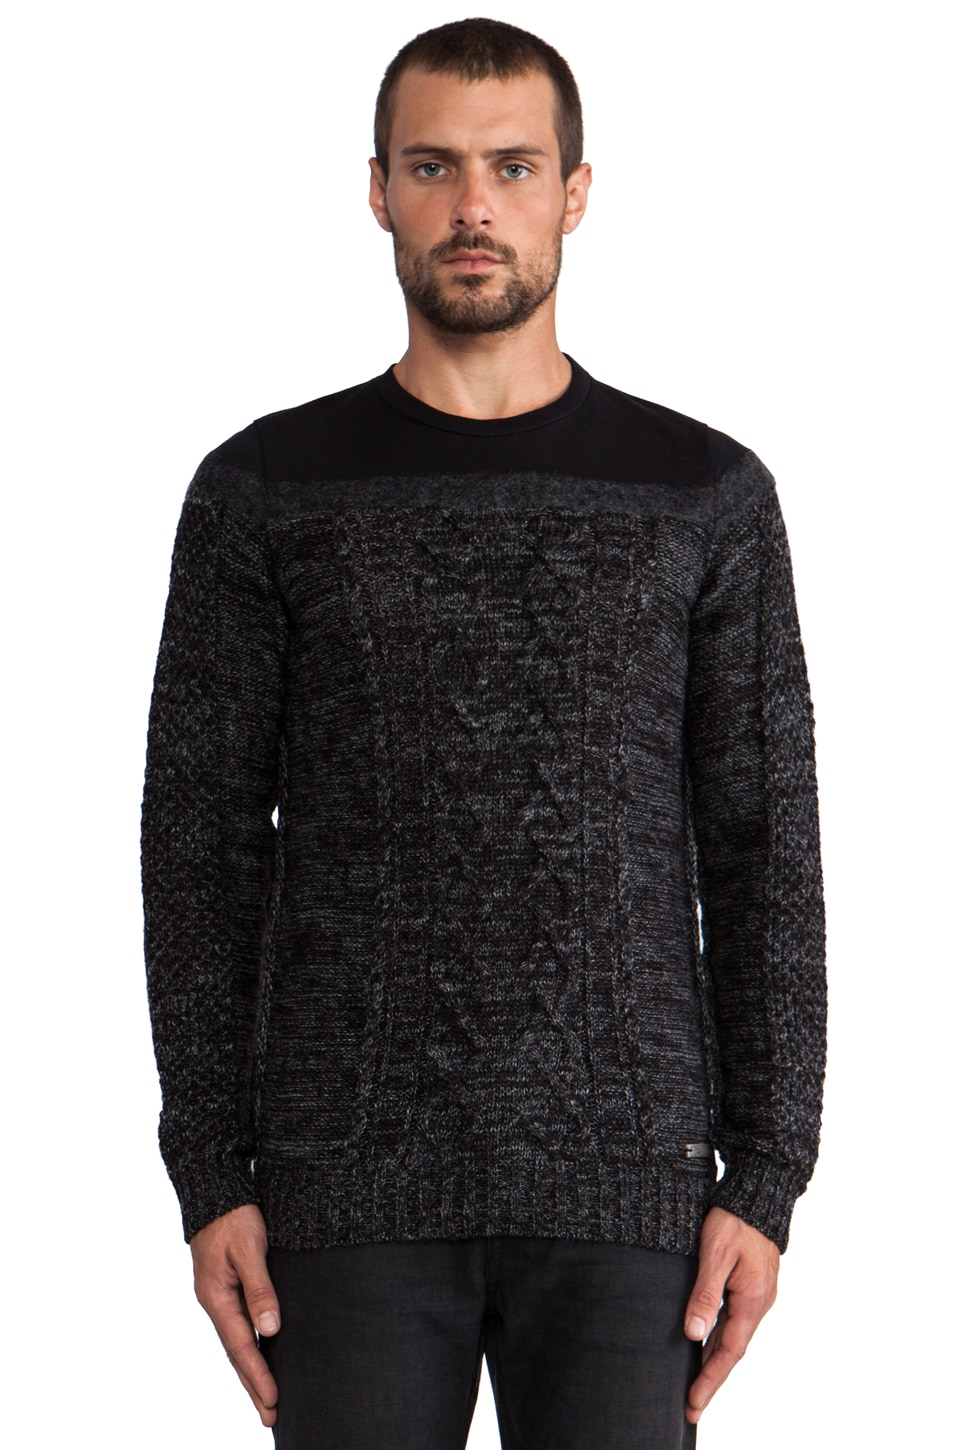 Diesel Boote Sweater in Black